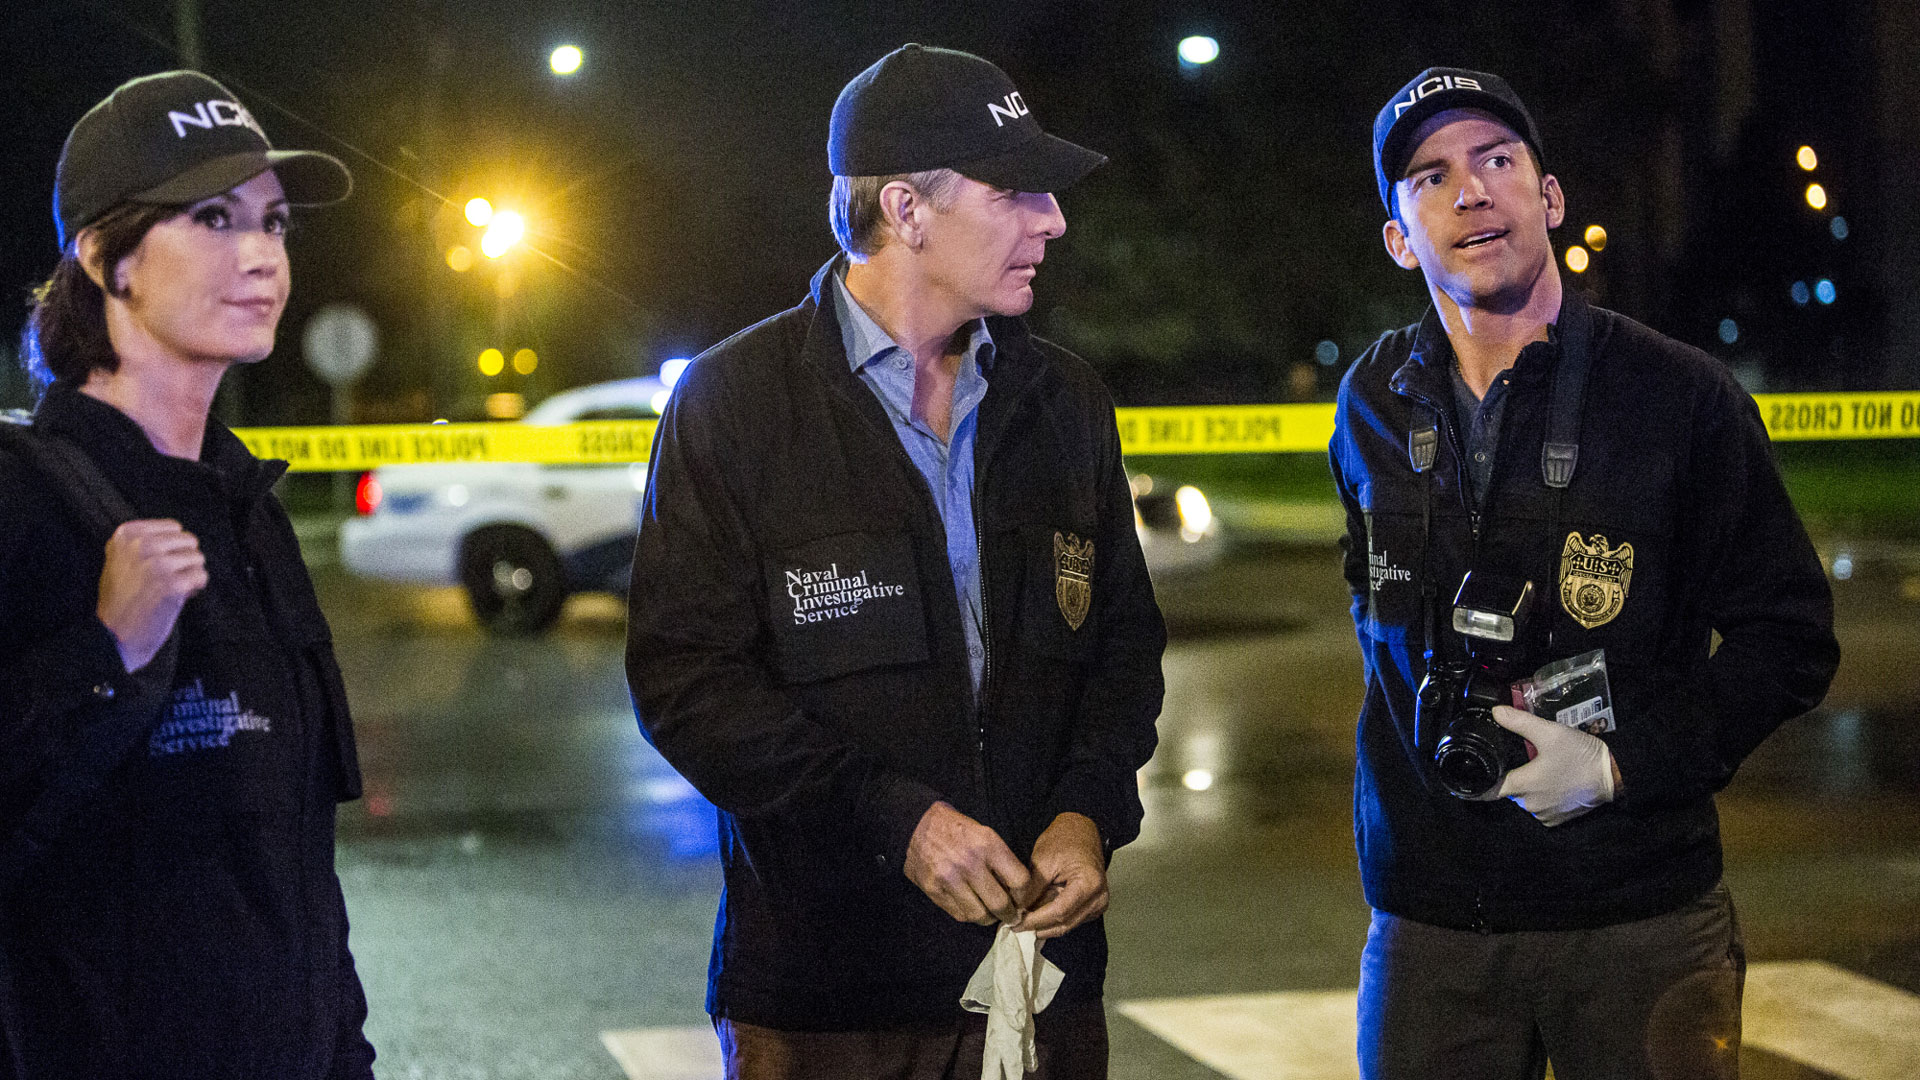 NCIS: New Orleans Season 2 finale airs on Tuesday, May 17 at 9/8c.